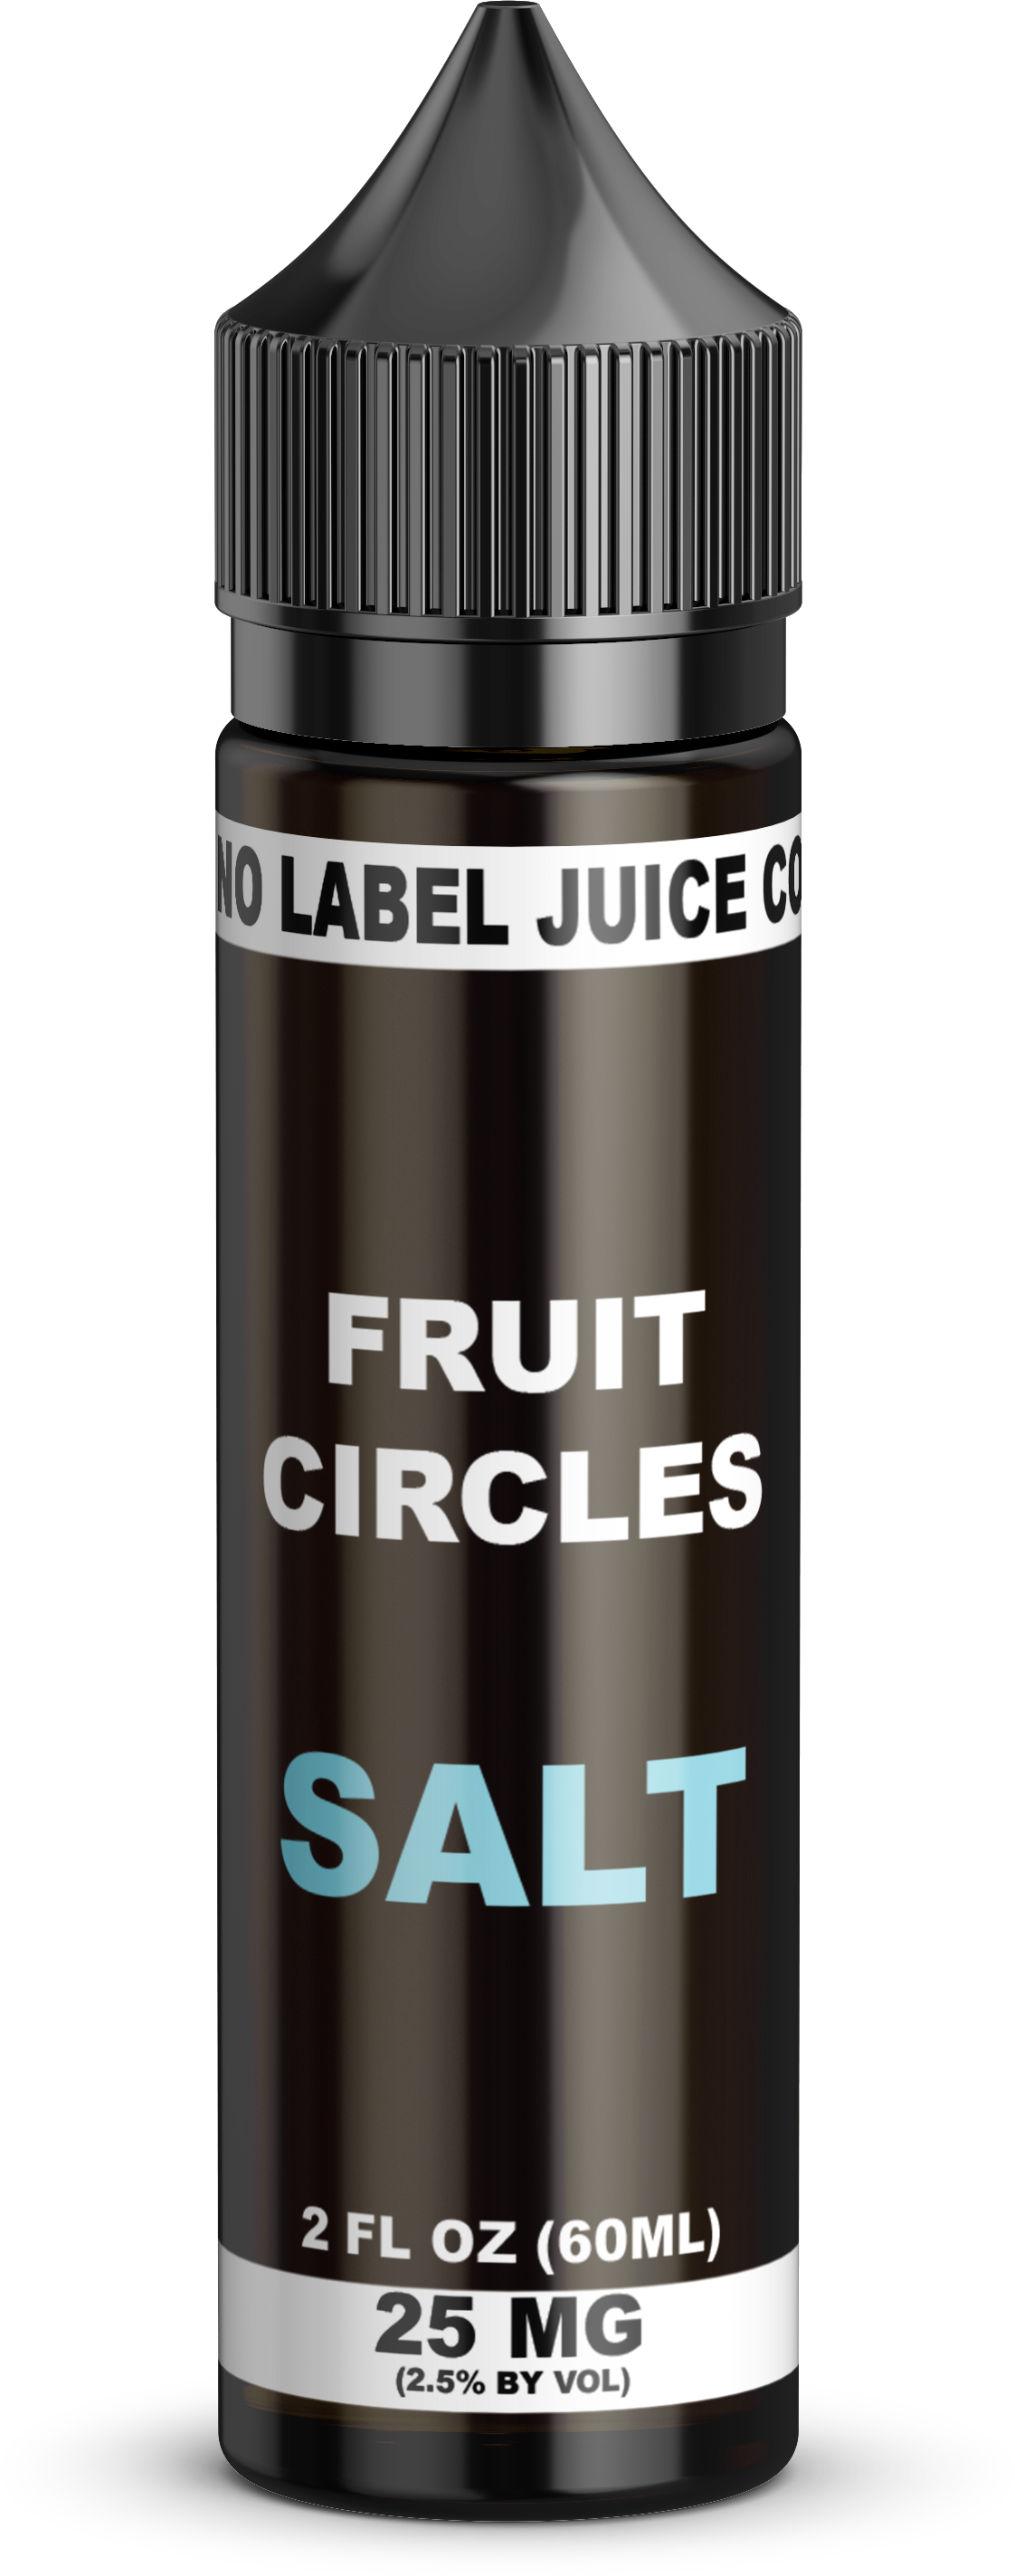 NO LABEL JUICE CO - FRUIT CIRCLES SALT (30ML)